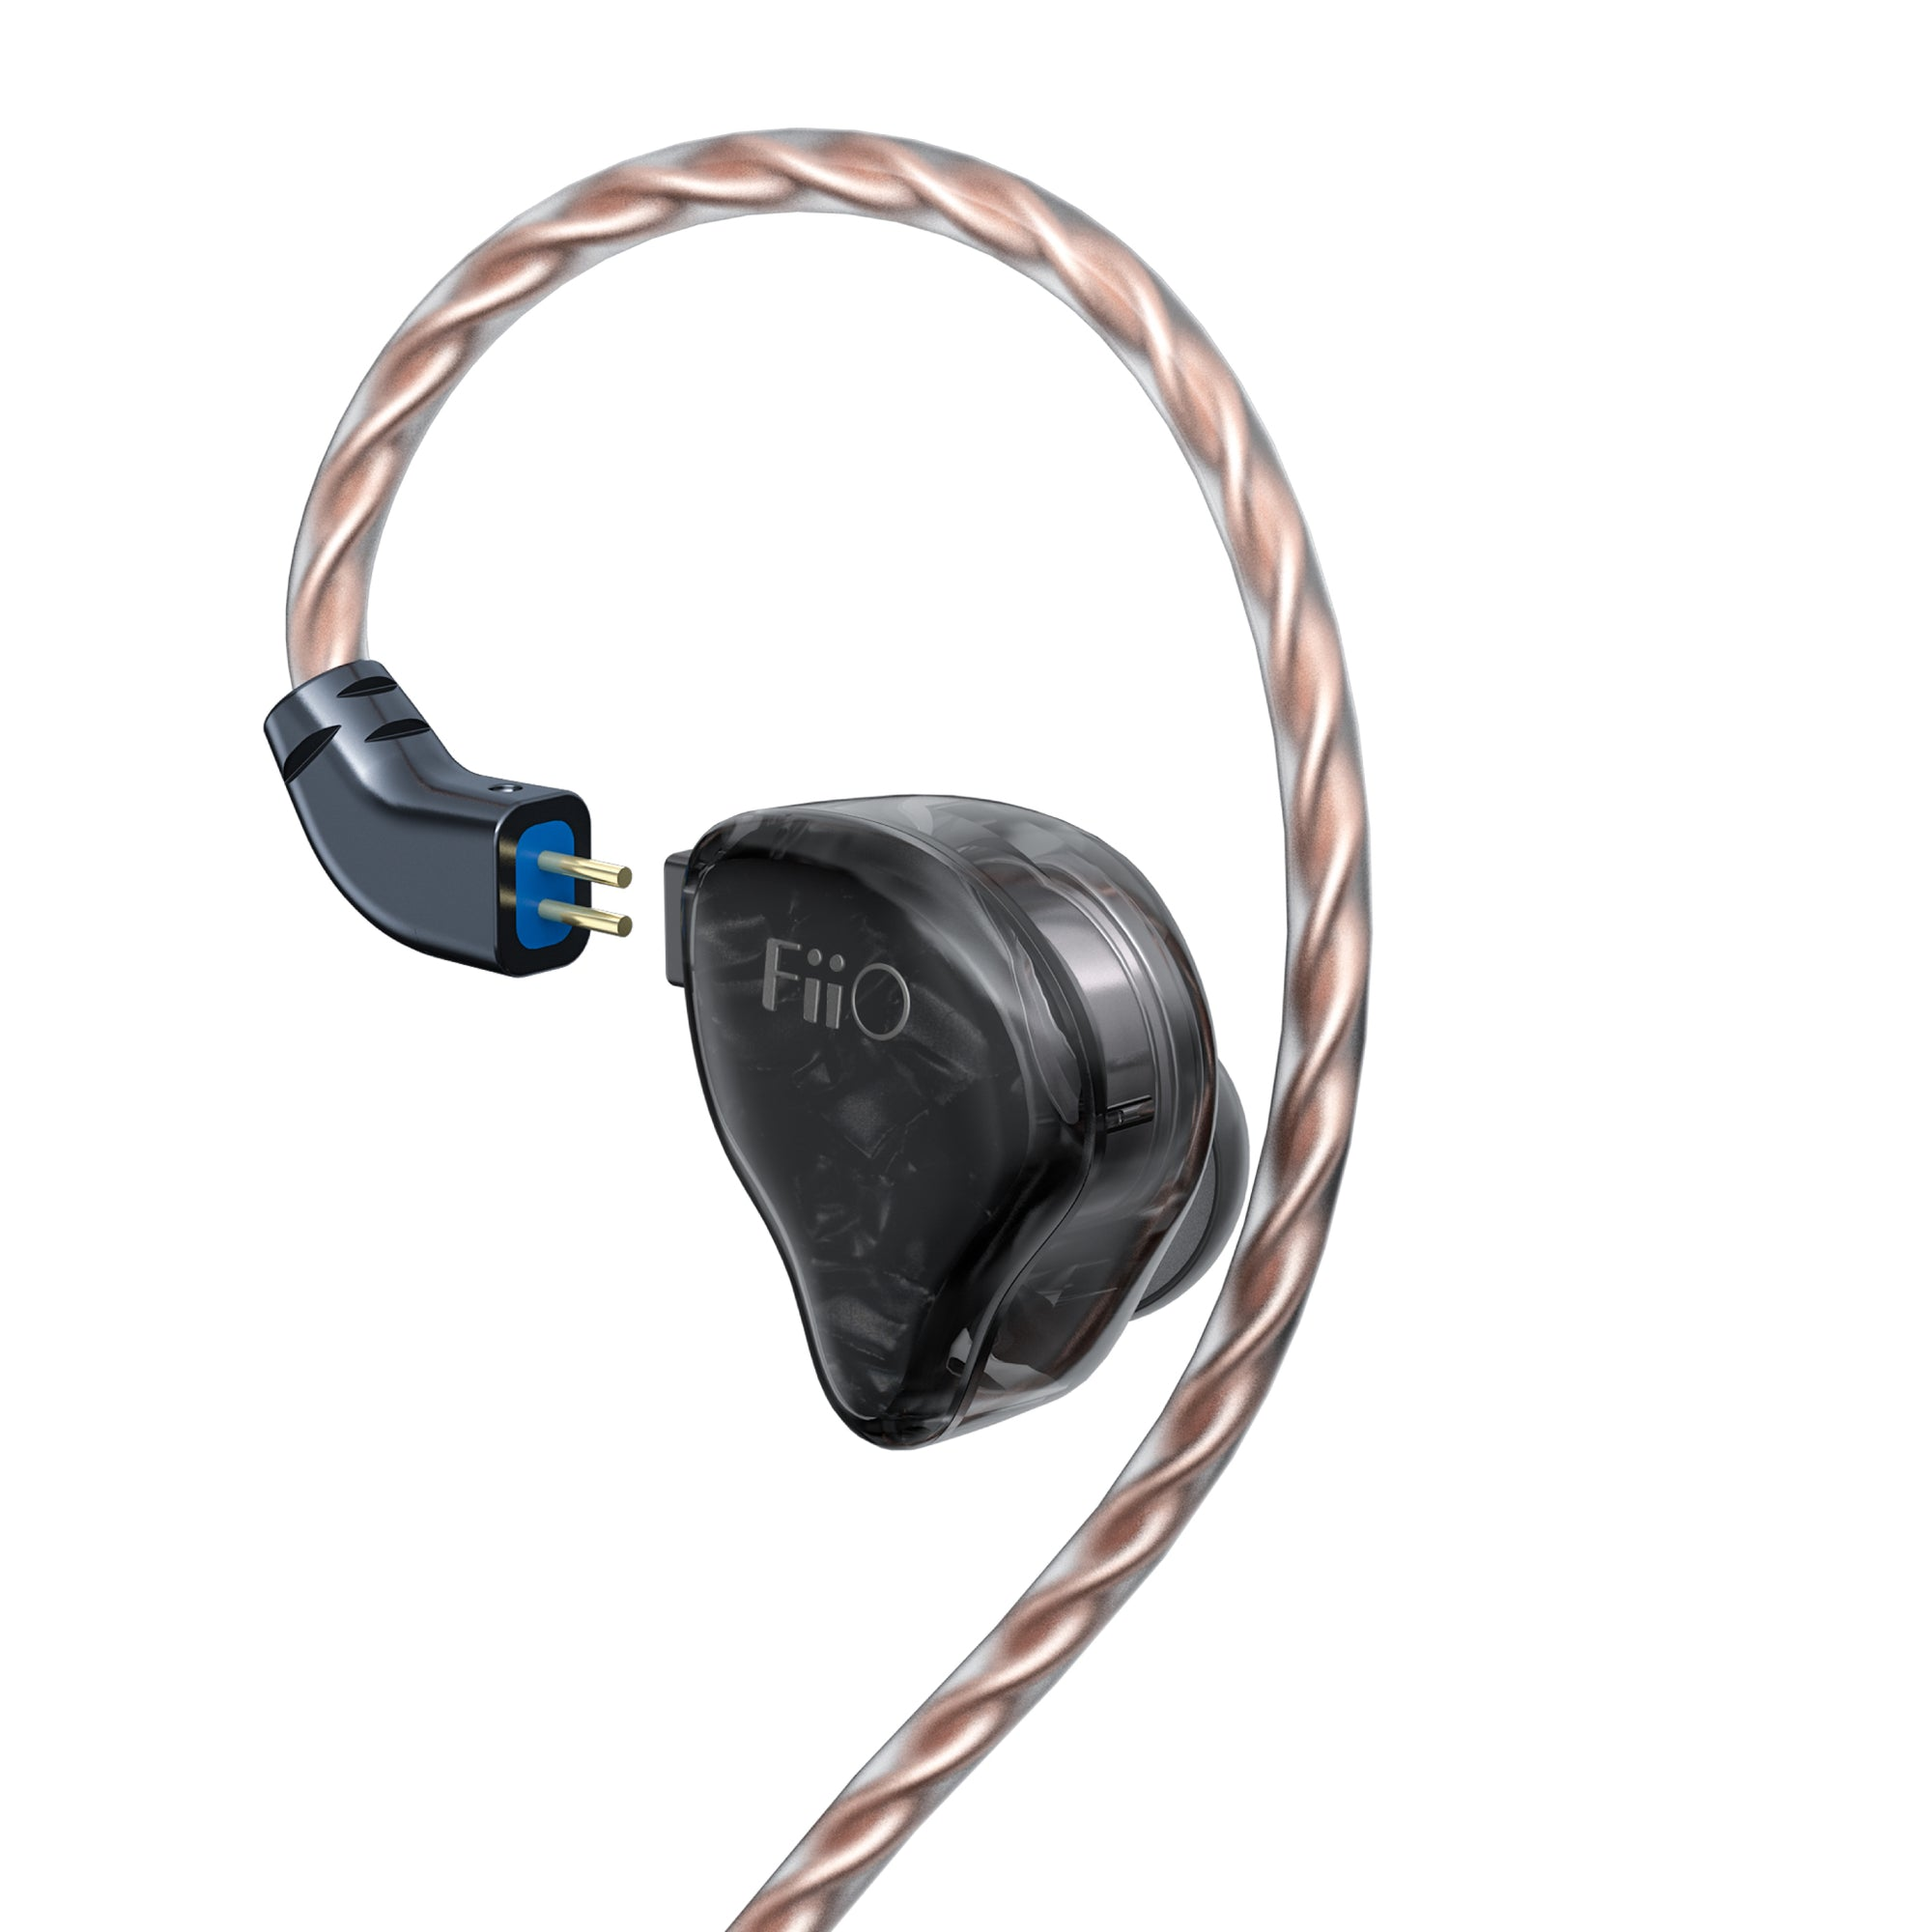 FiiO FH1S Hybrid In-Ear Monitor - Gears For Ears